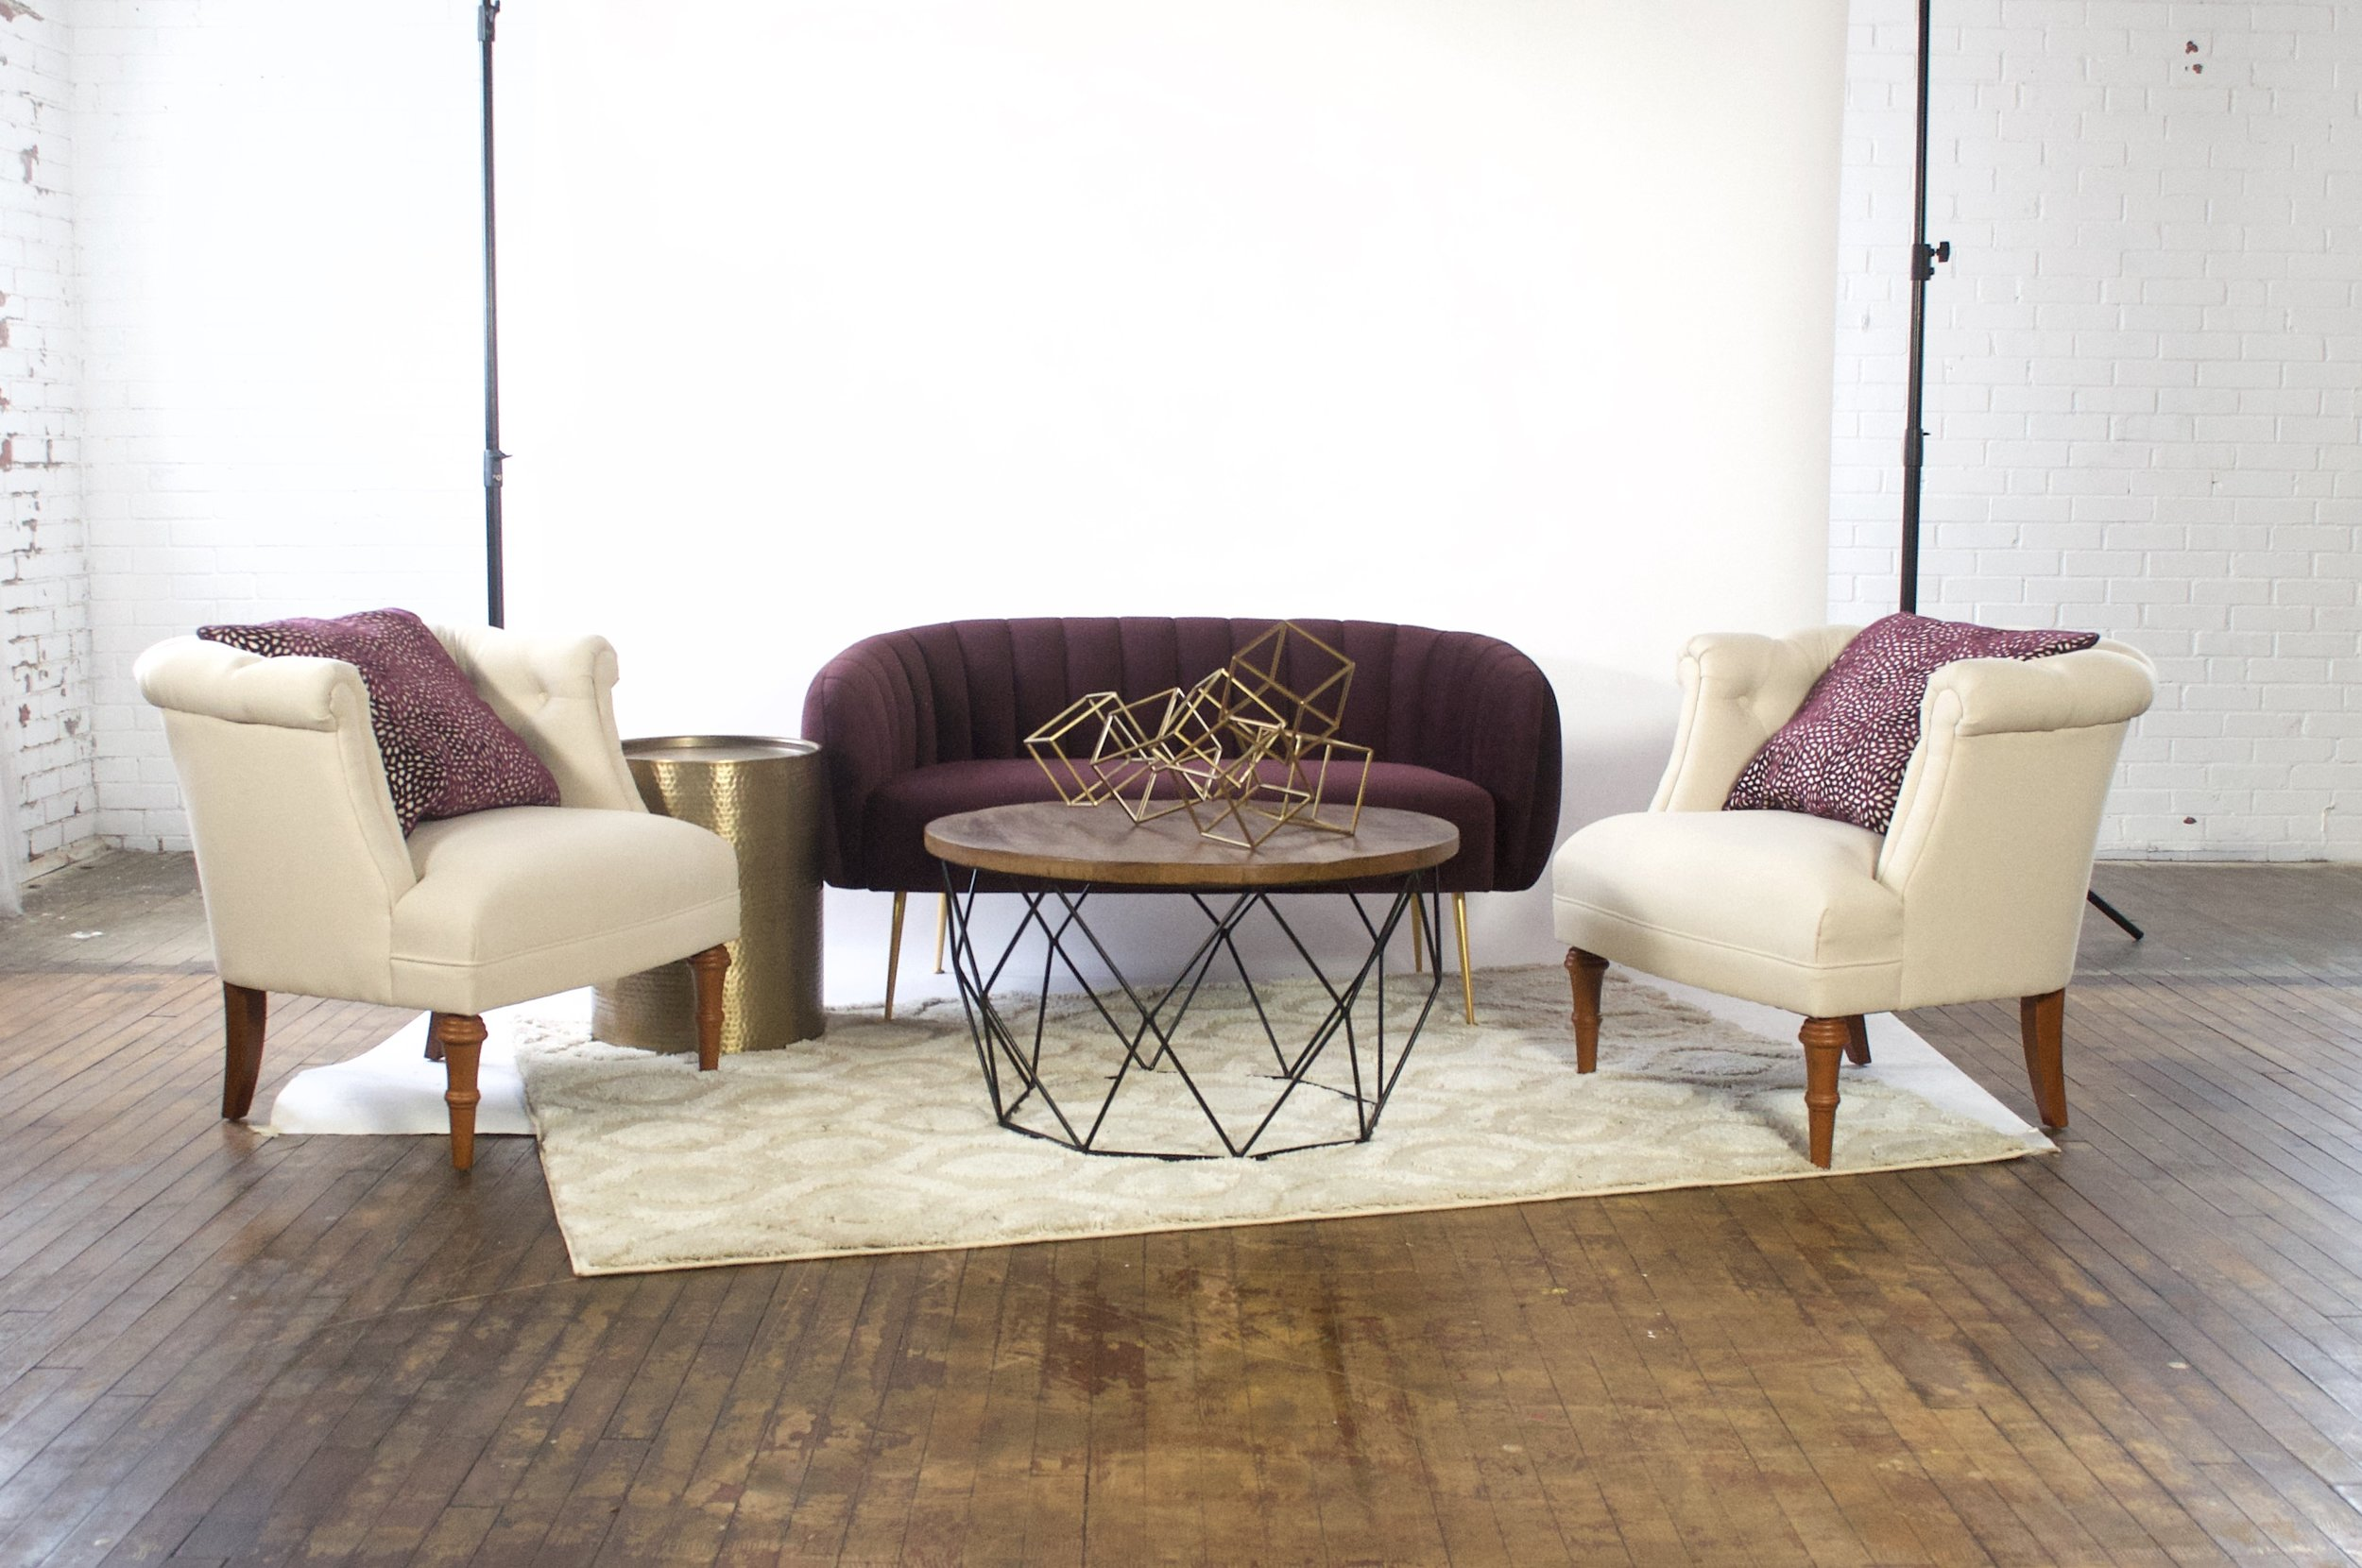 Phyillis and Bonnie Demi - featuring moroccan cream rug, baxter coffee table, dimpled side table